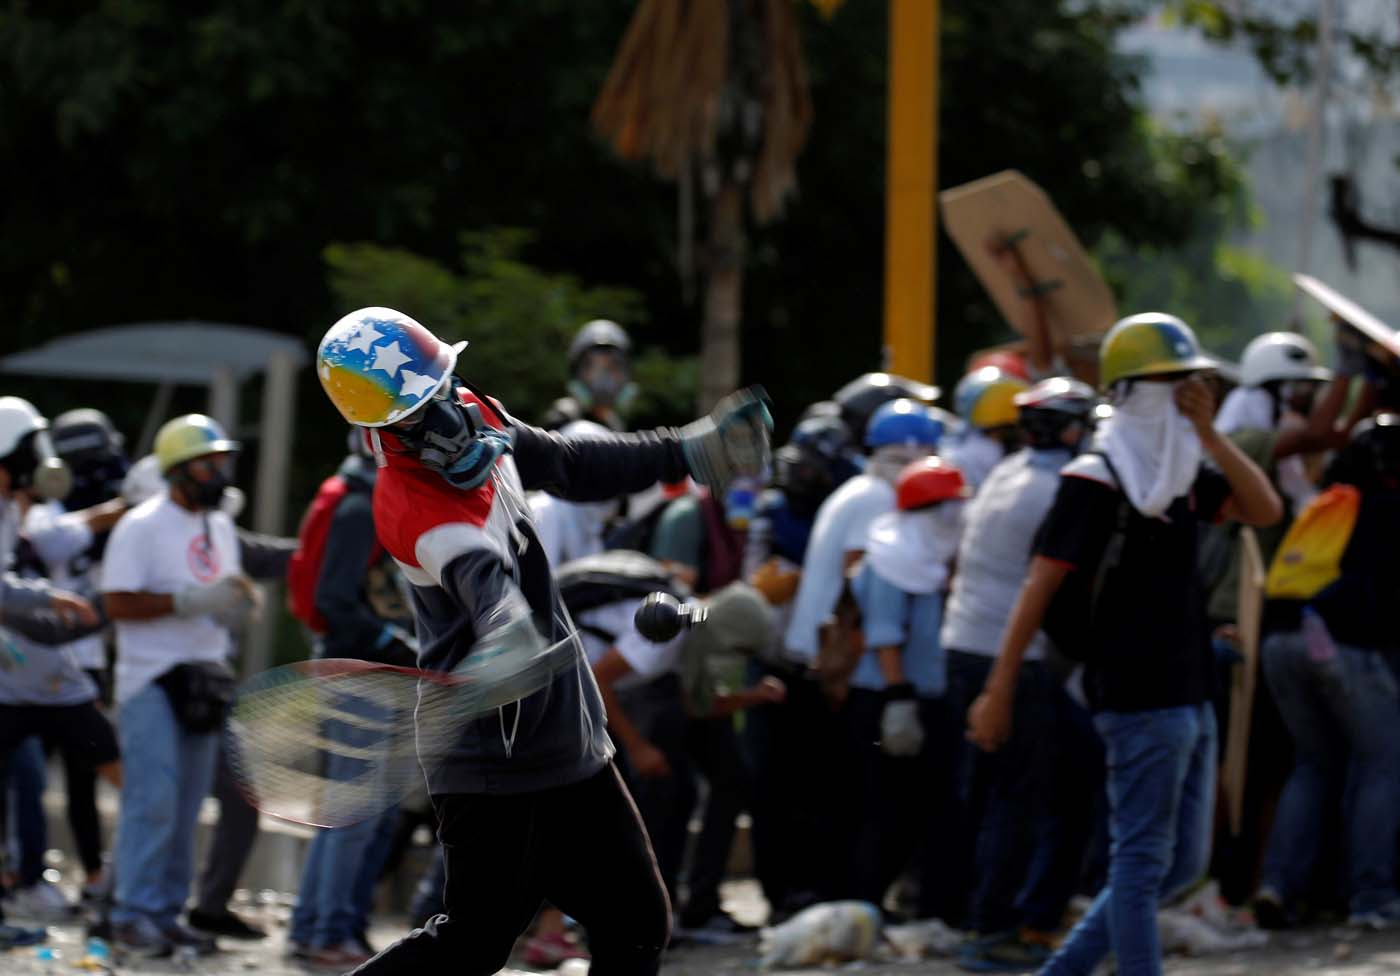 A demonstrator uses a racket to hit a tear gas canister while clashing with riot security forces during a rally against President Nicolas Maduro in Caracas, Venezuela, May 24, 2017. REUTERS/Carlos Barria